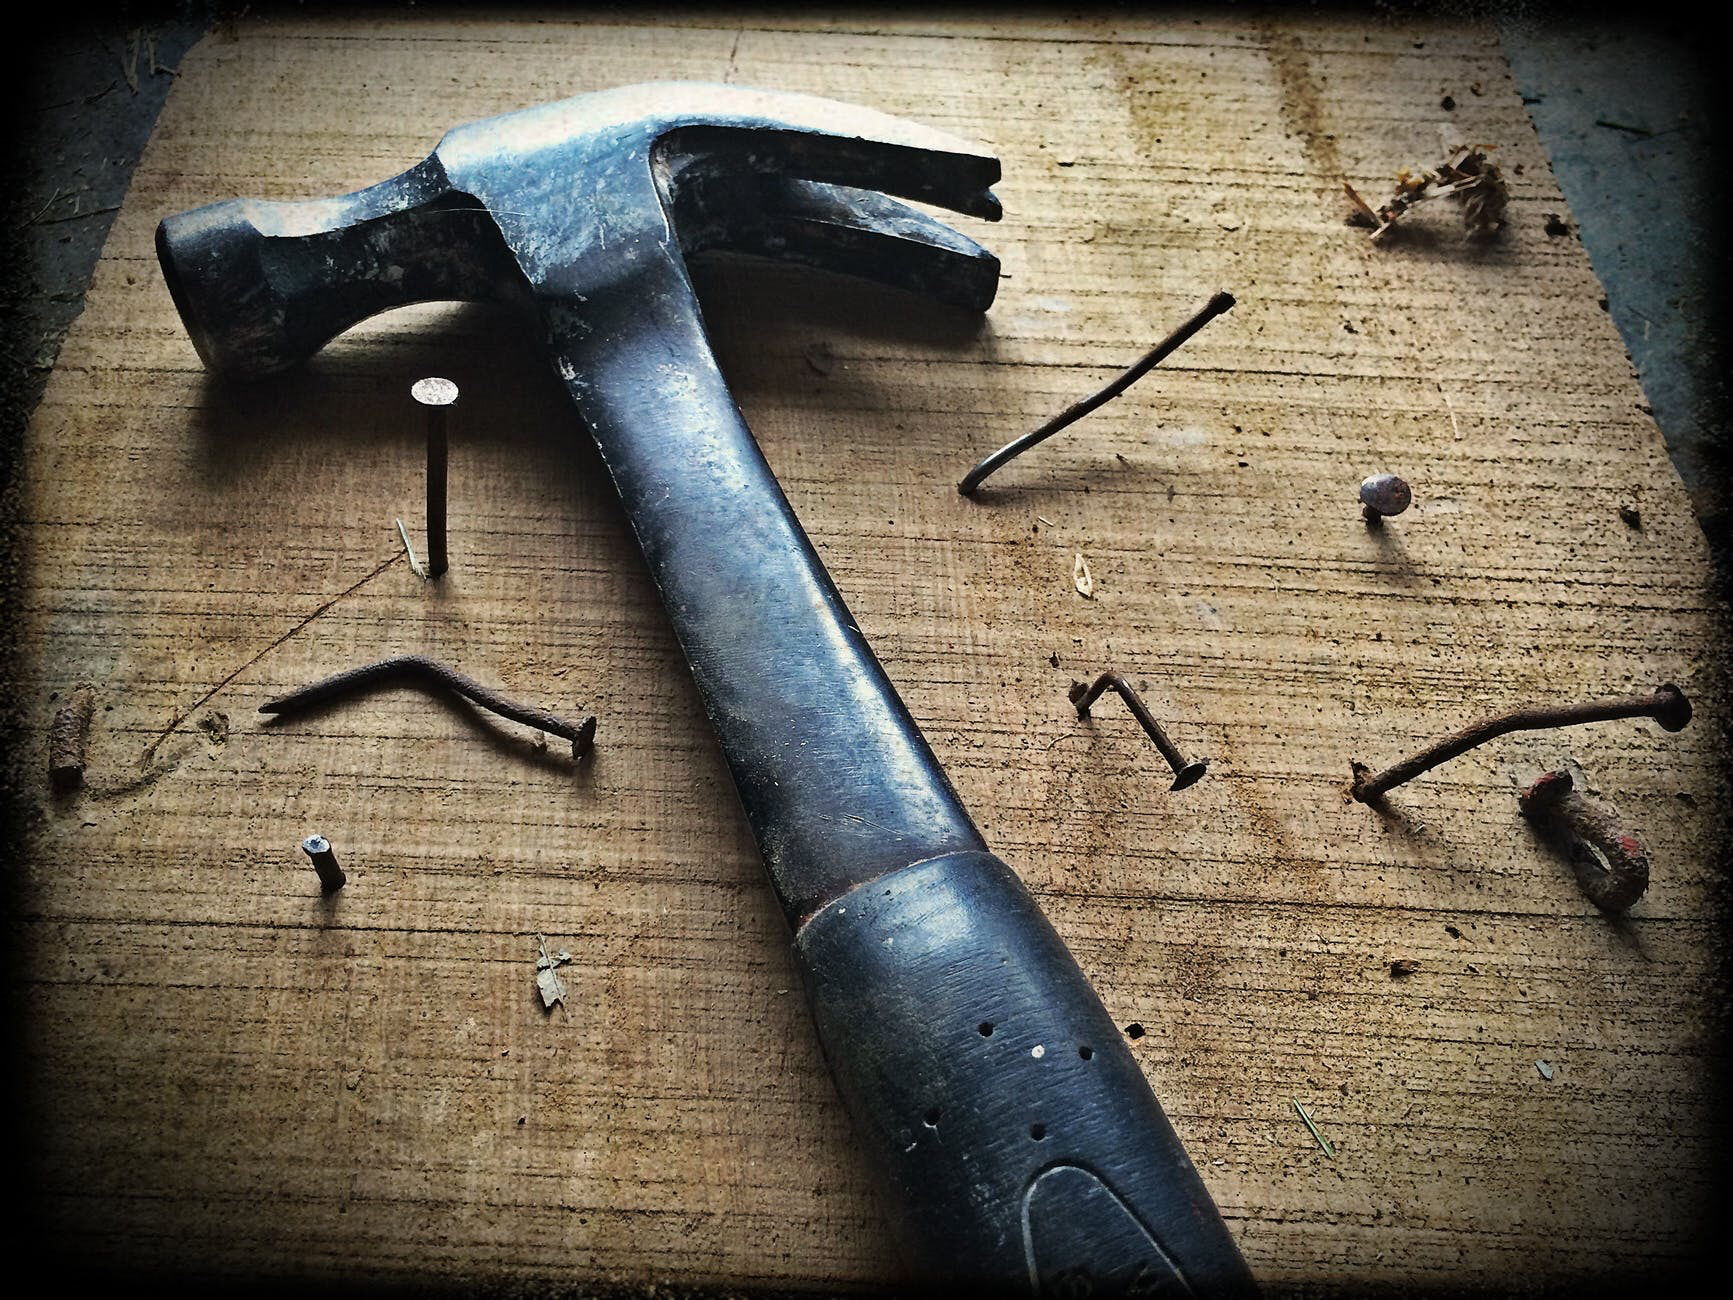 Black and silver hammer laying on a piece of wood with various nails driven into it with varying degrees of success — some are bent, others only part way in